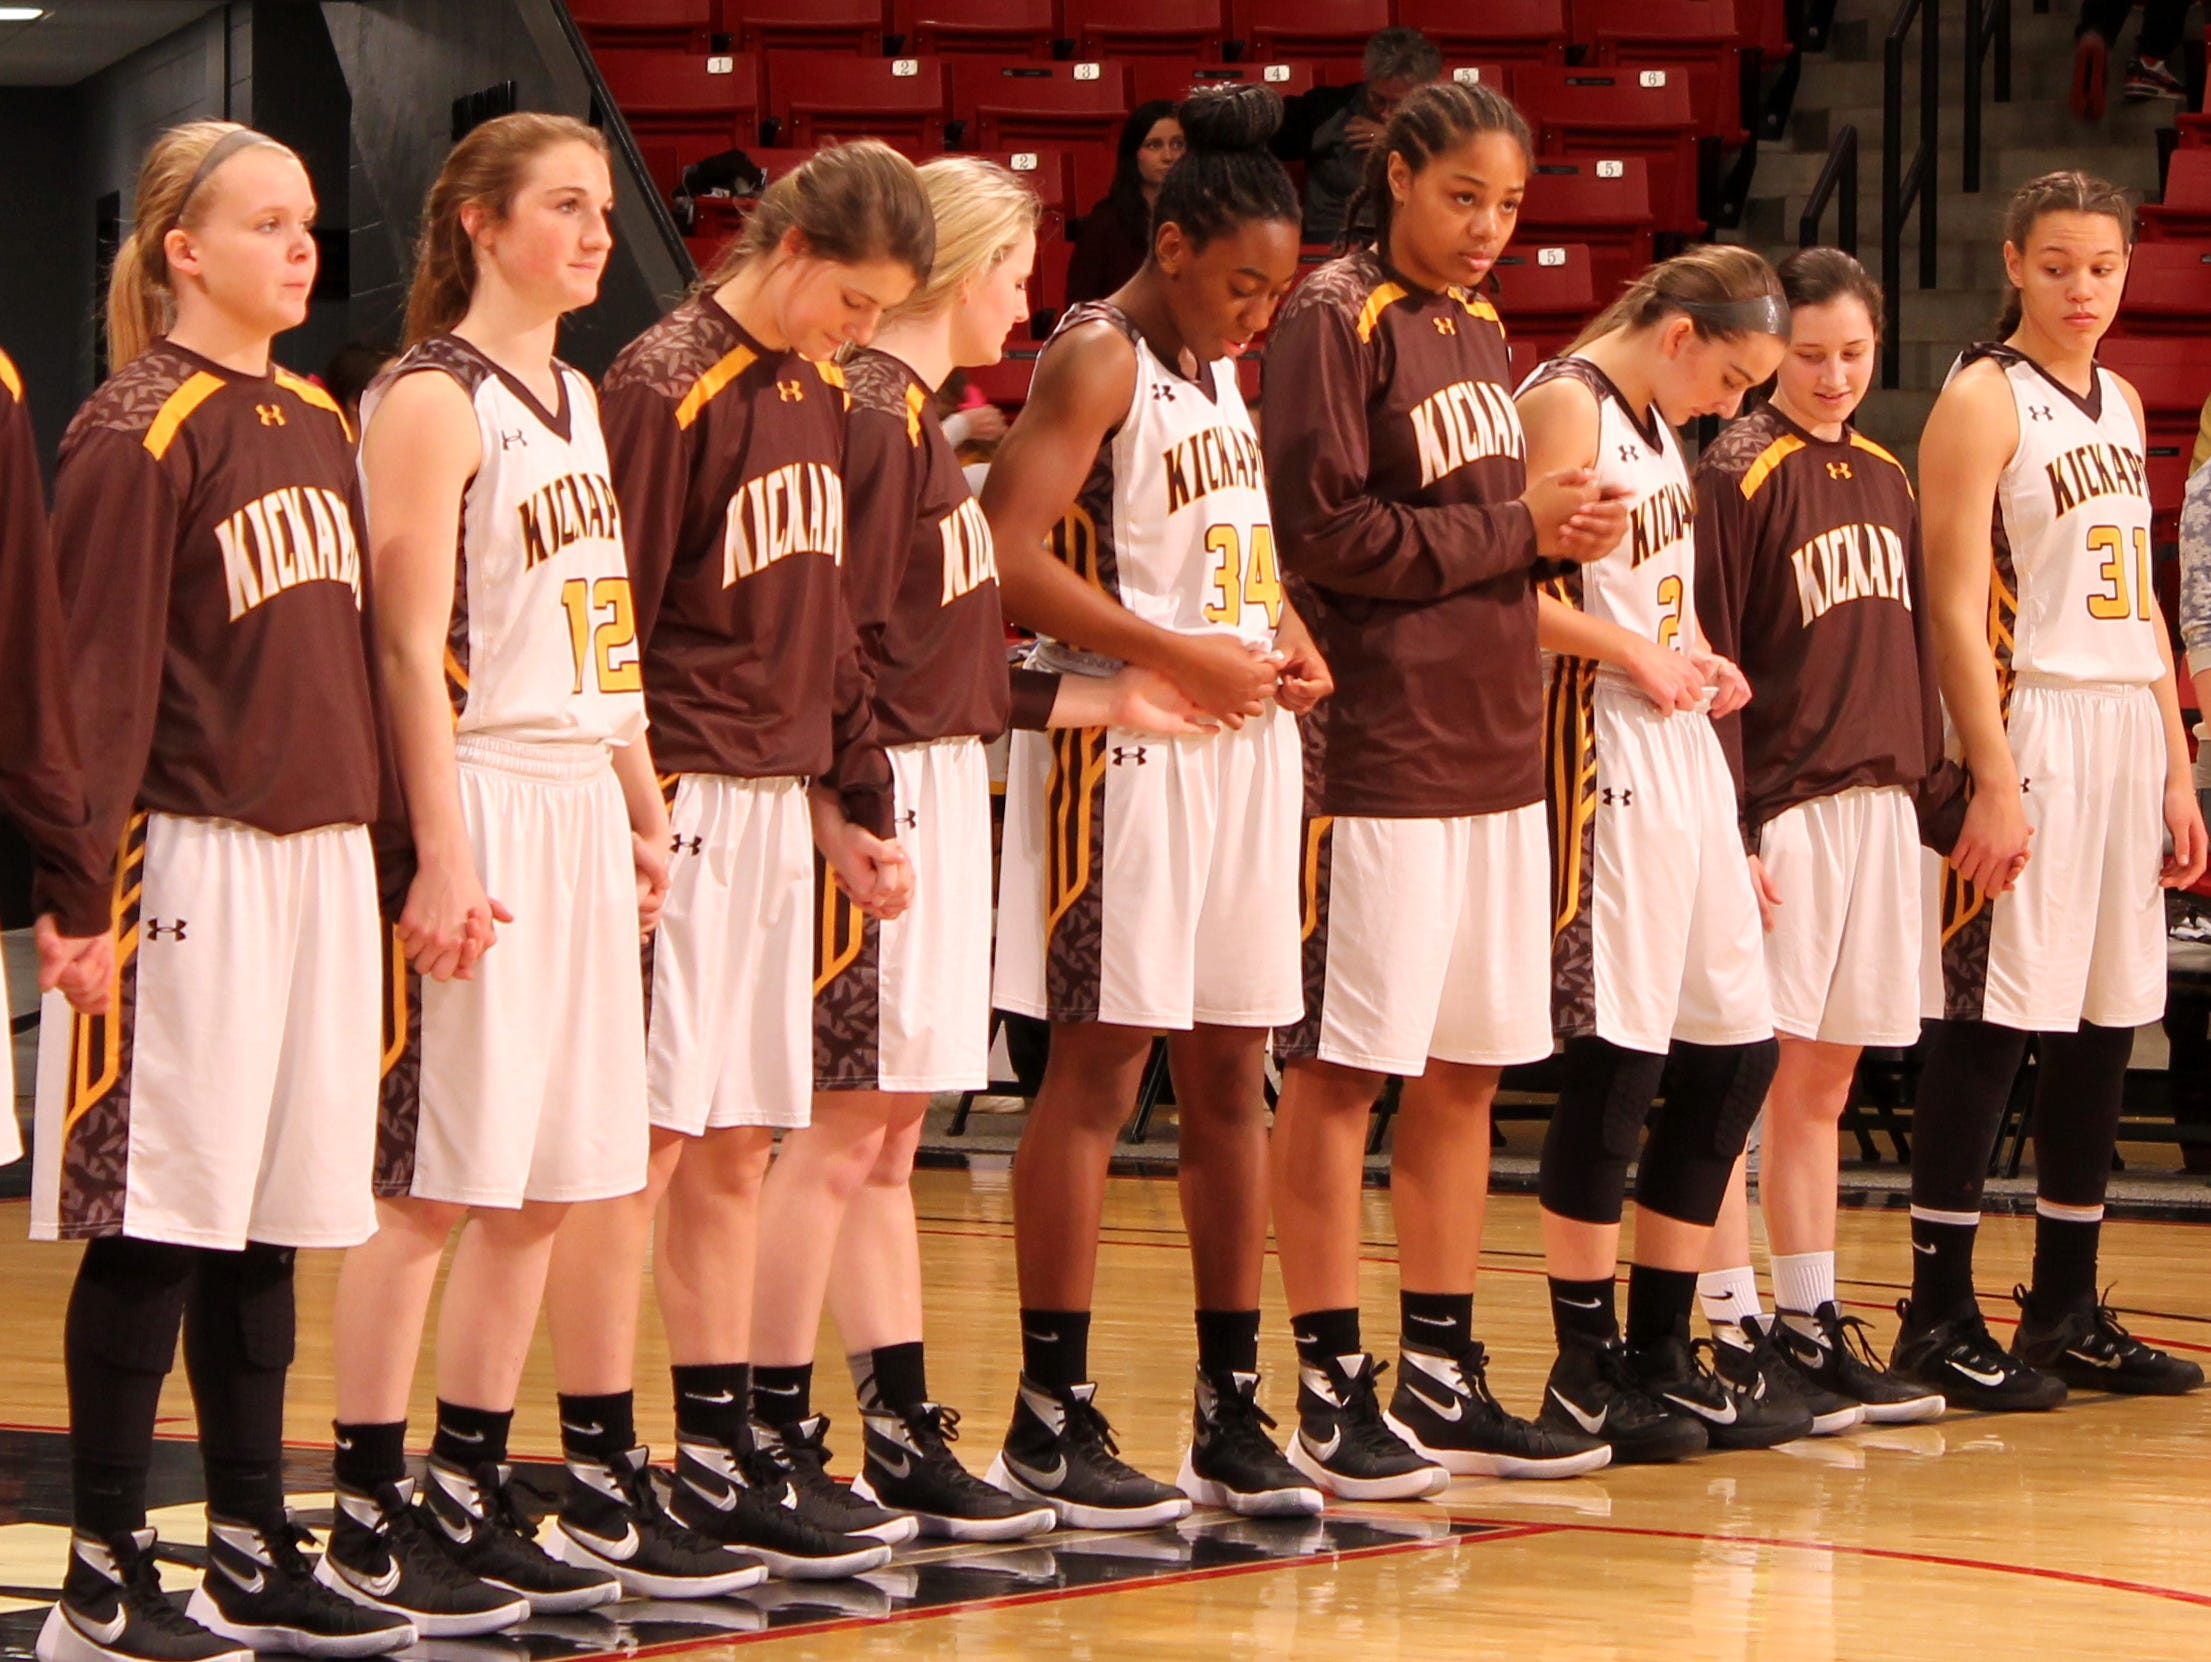 Kickapoo High School's girls basketball team stands together moments before the national anthem prior to a game against Strafford in the Pink and White Lady Classic.